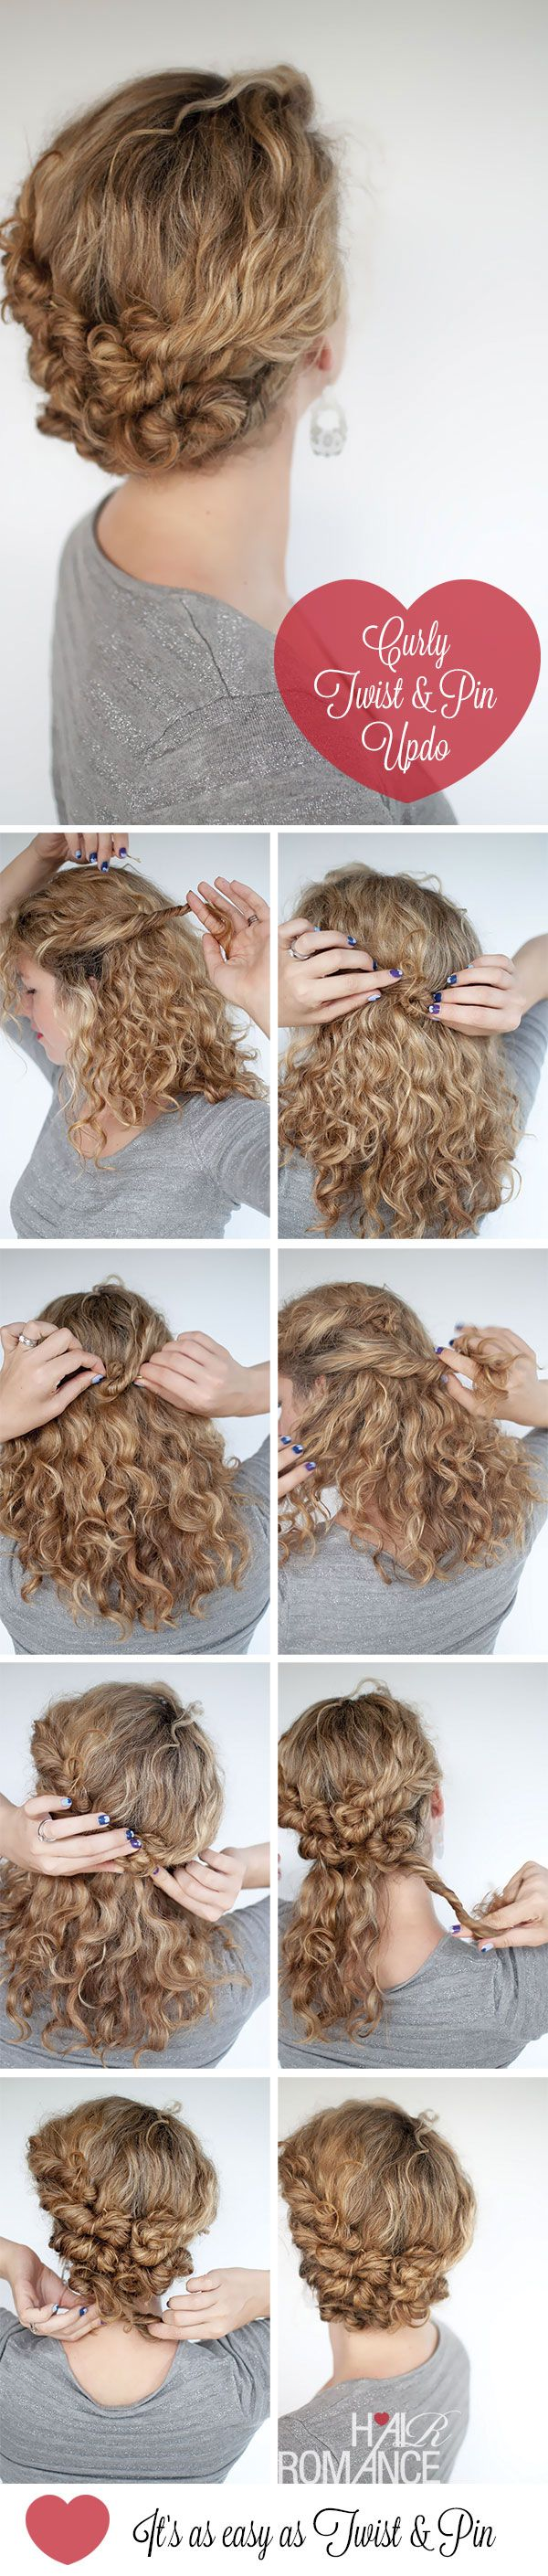 Hair Romance - curly Twist & Pin hairstyle tutorial. Kind of like what I already do, but more twists. Loving it!